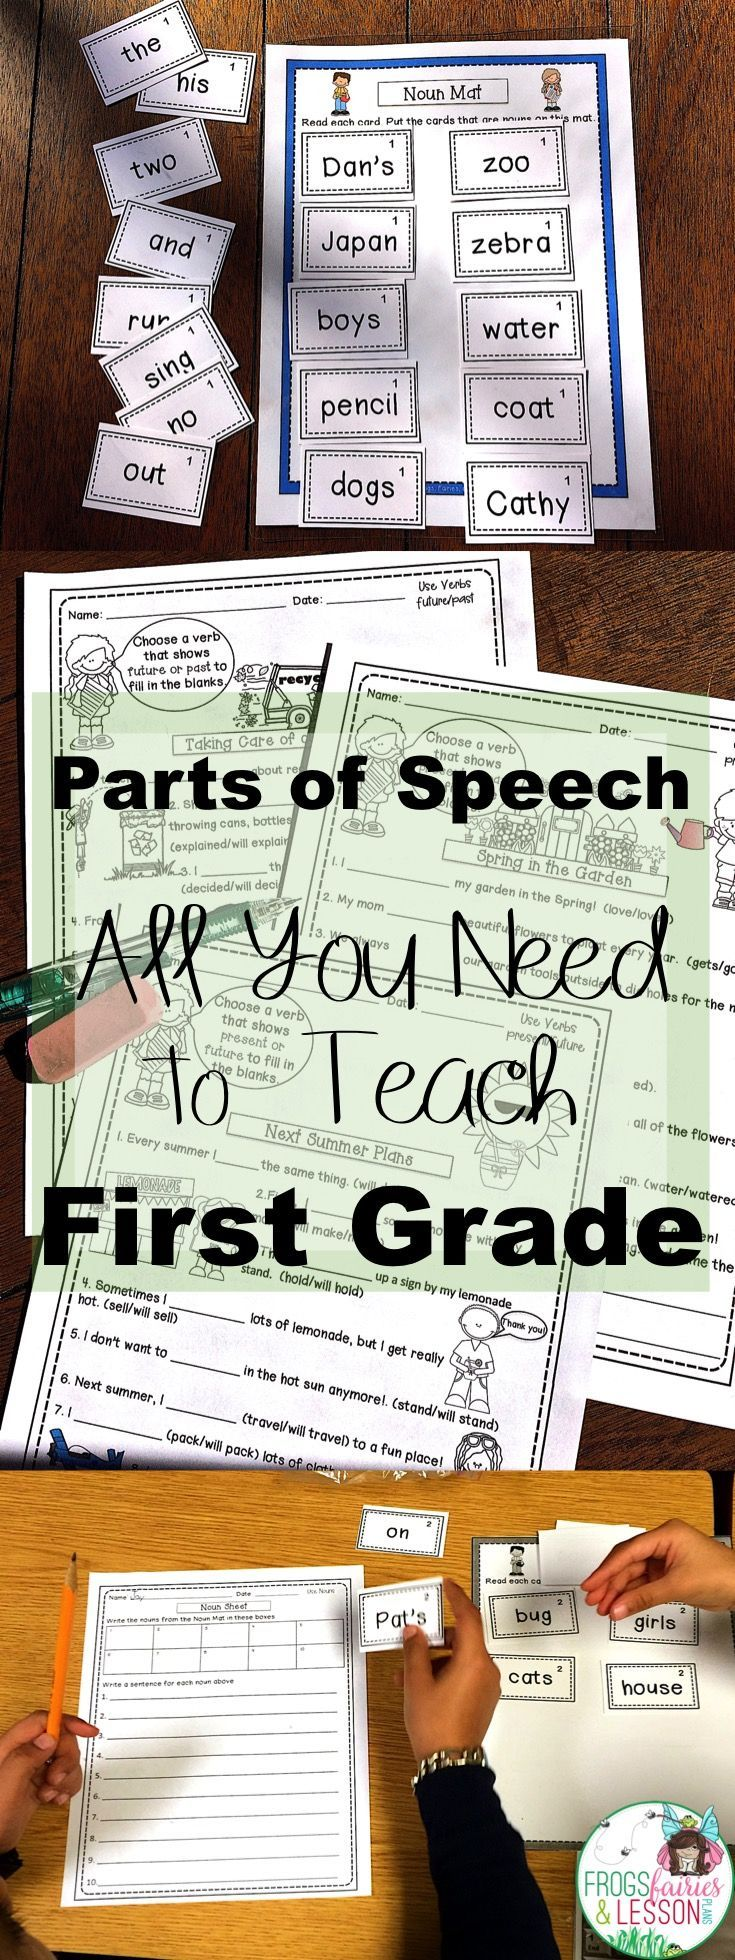 This packet has all of the First Grade Parts of Speech that you need to teach this year! It includes worksheets AND Literacy Centers for Nouns, Verbs, Adjectives, Pronouns, Prepositions, Conjunctions, and Determiners! Your students will be engaged and you won't have to spend hours looking for resources! Click to see full description and preview.